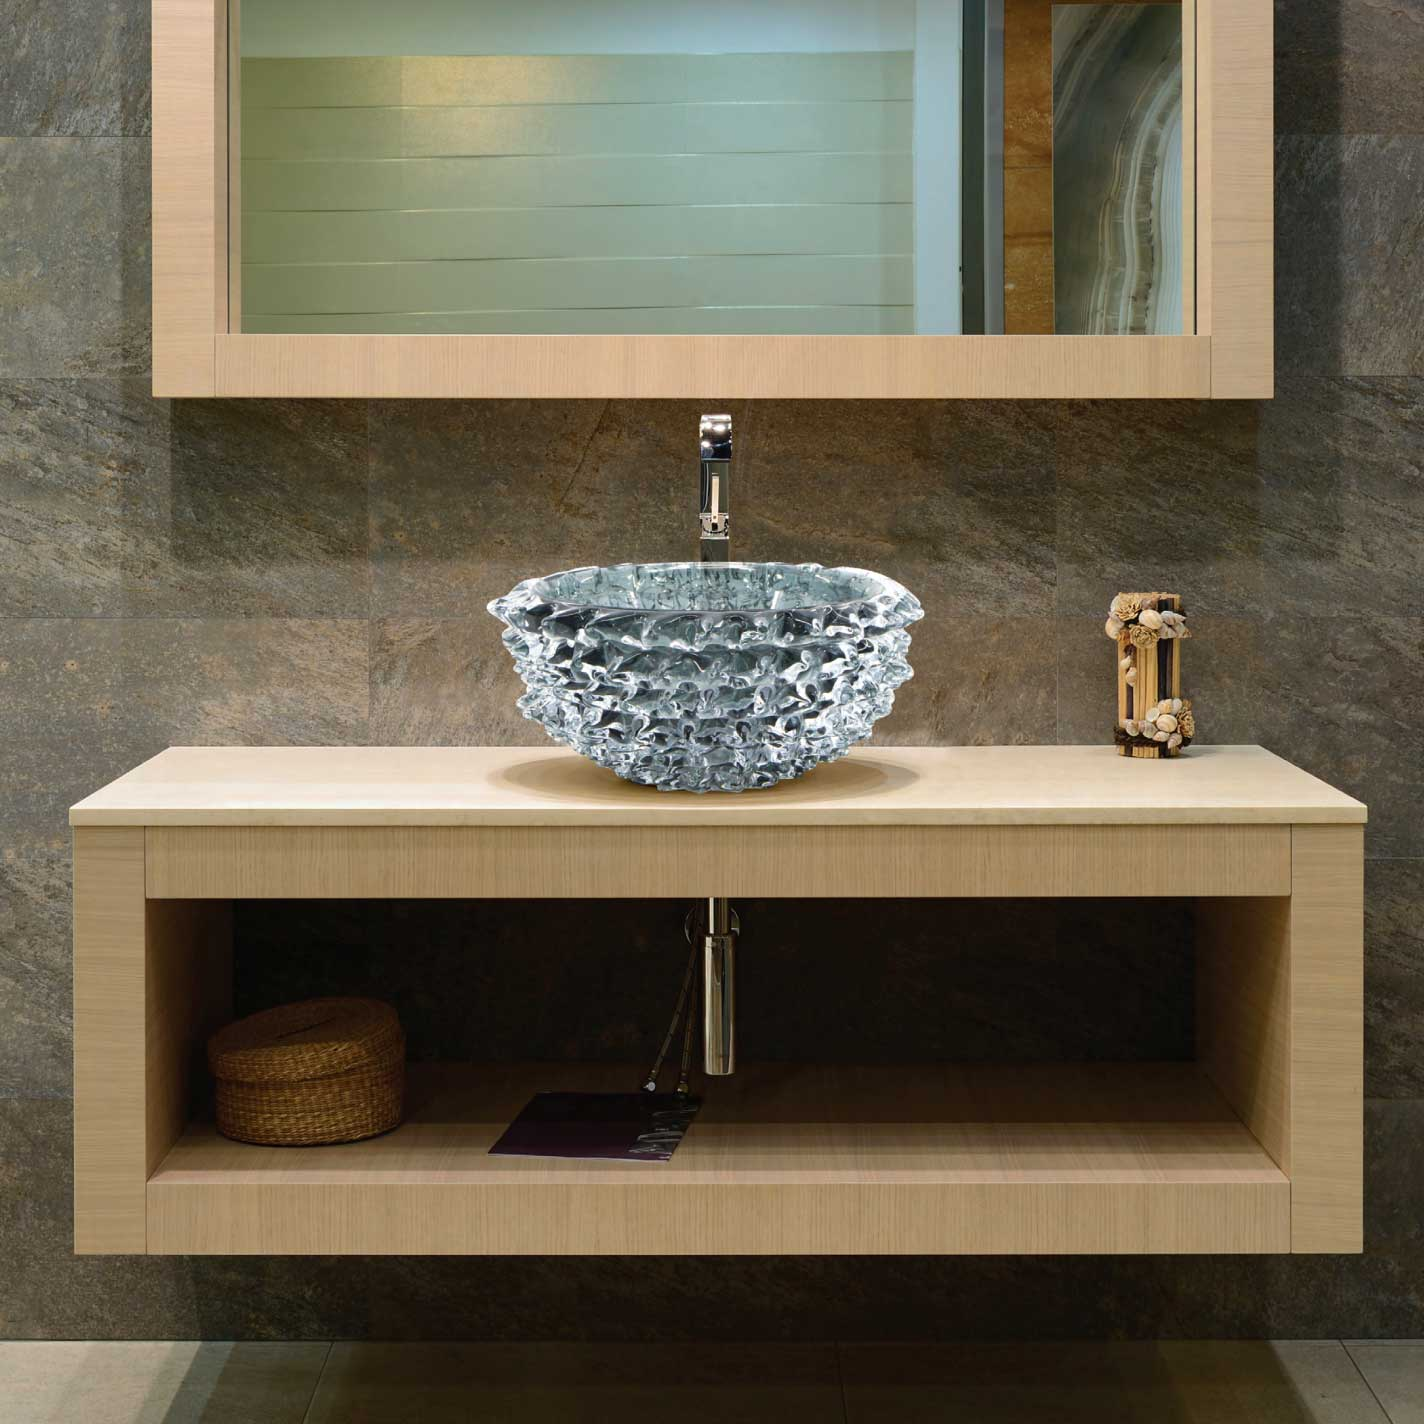 New-York apartment on Times Square, creation of the Scilla washbasin entirely in hand-blown glass by our master glassmakers in Murano. The Scilla series, reminiscent of the Greek legend of Scilla and Cariddi, is a true example of workmanship. Venetian glass.